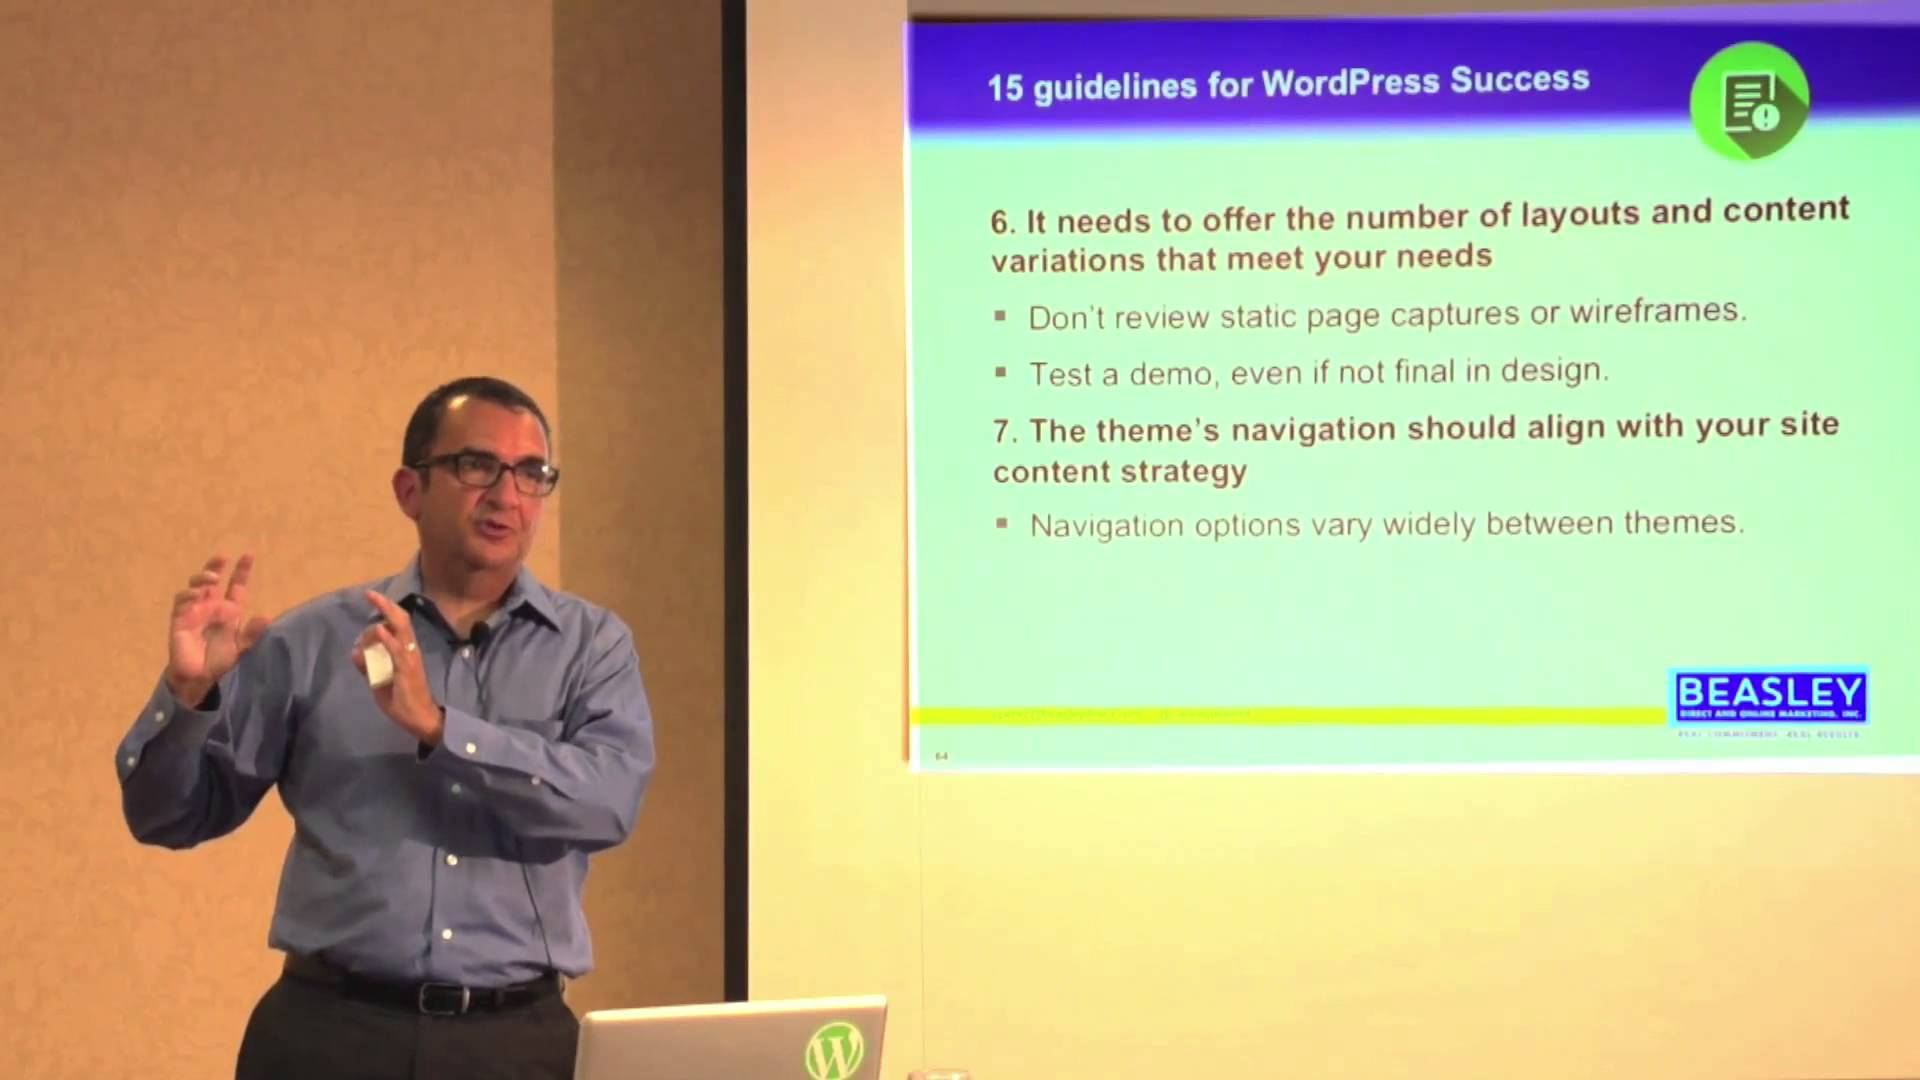 WordPress Best Practices – 15 Guidelines for Success with WordPress Websites